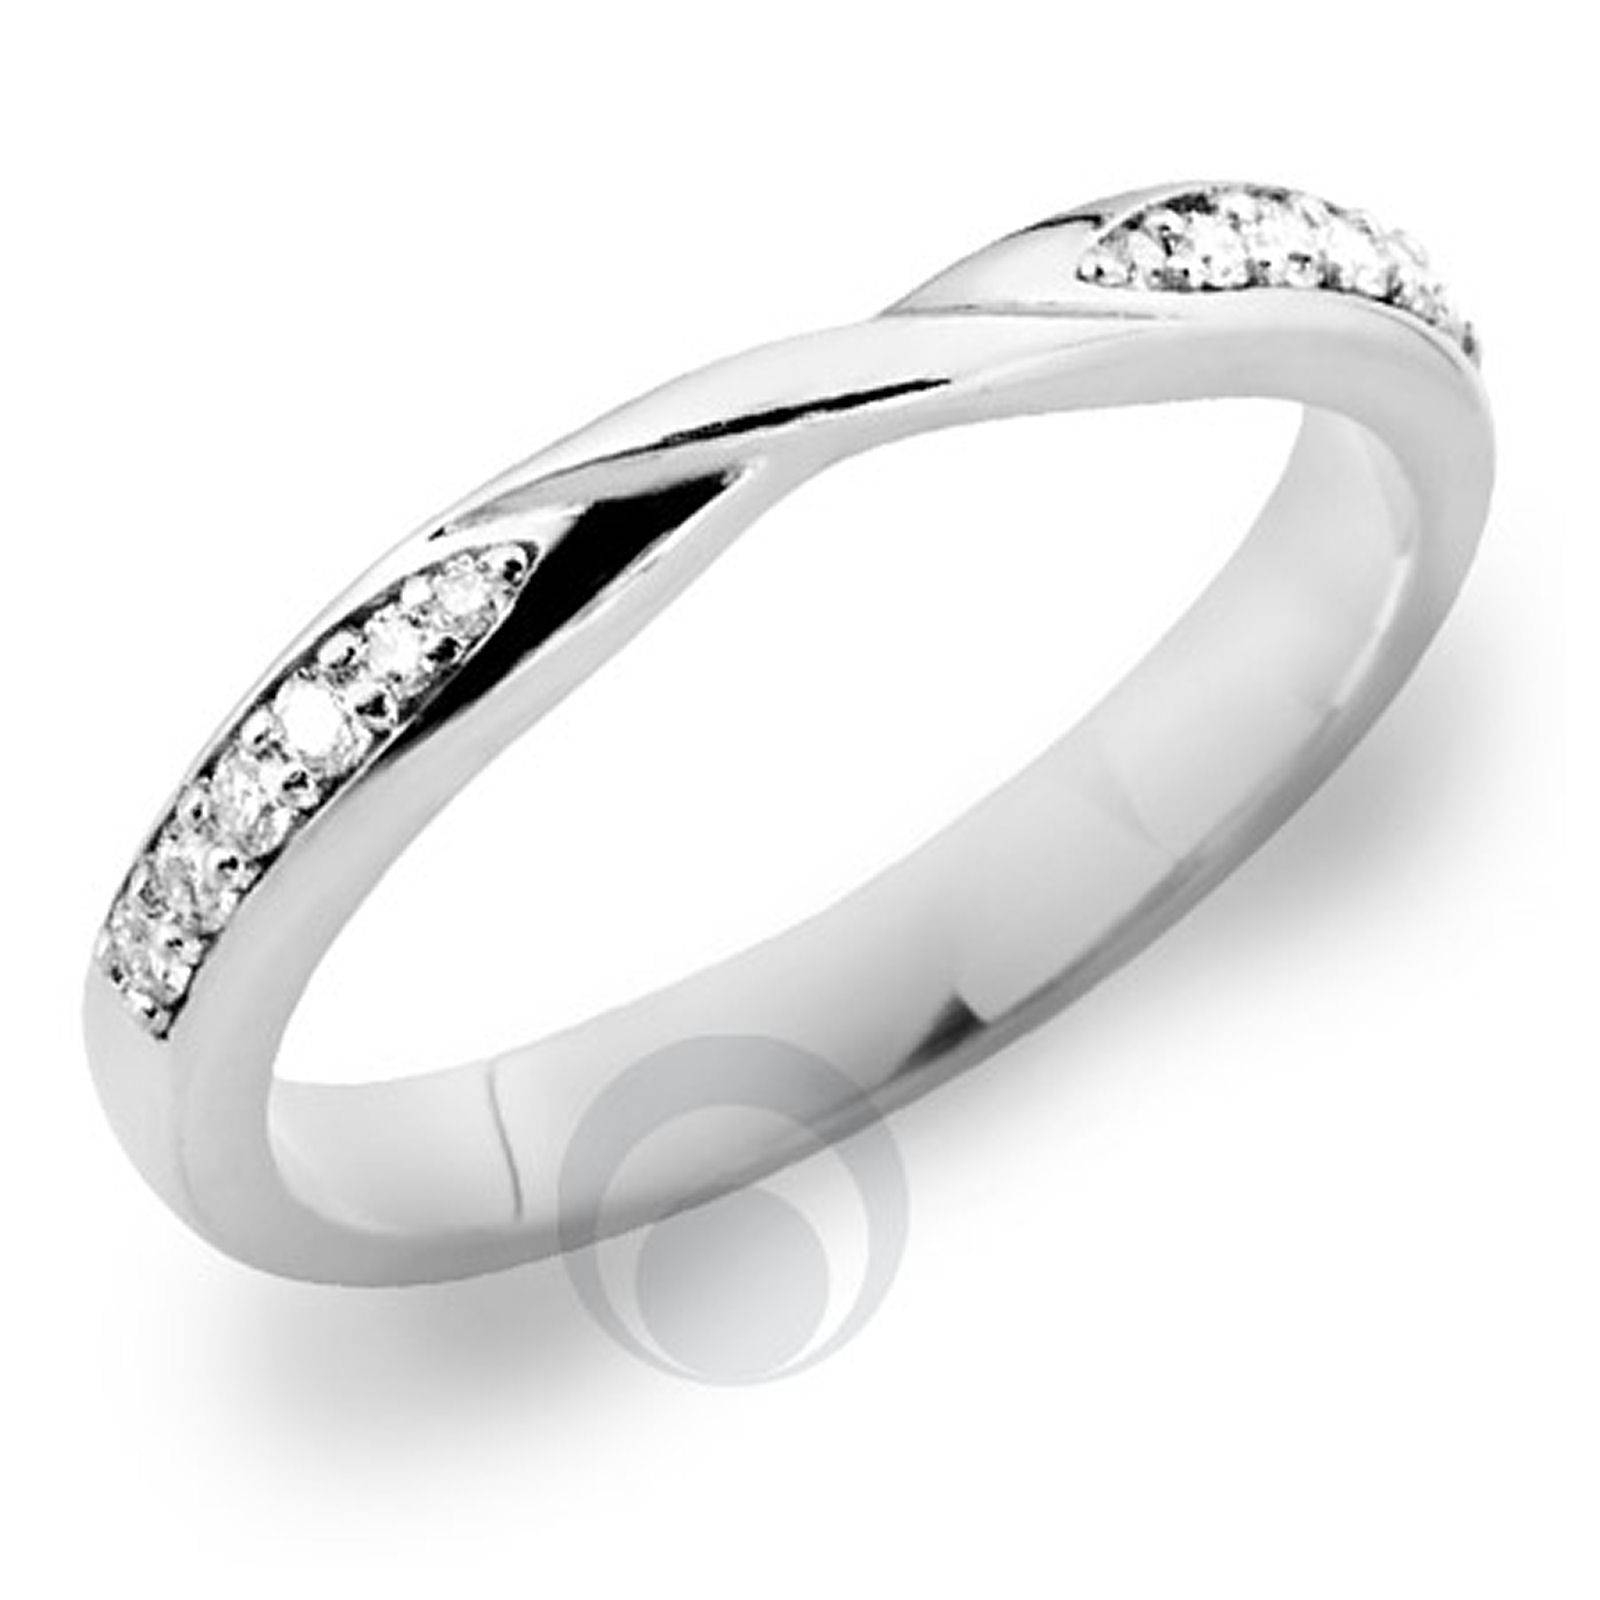 Diamond Platinum Wedding Ring For Solitaire Engagement Ring With Platinum And Diamond Wedding Rings (View 15 of 15)